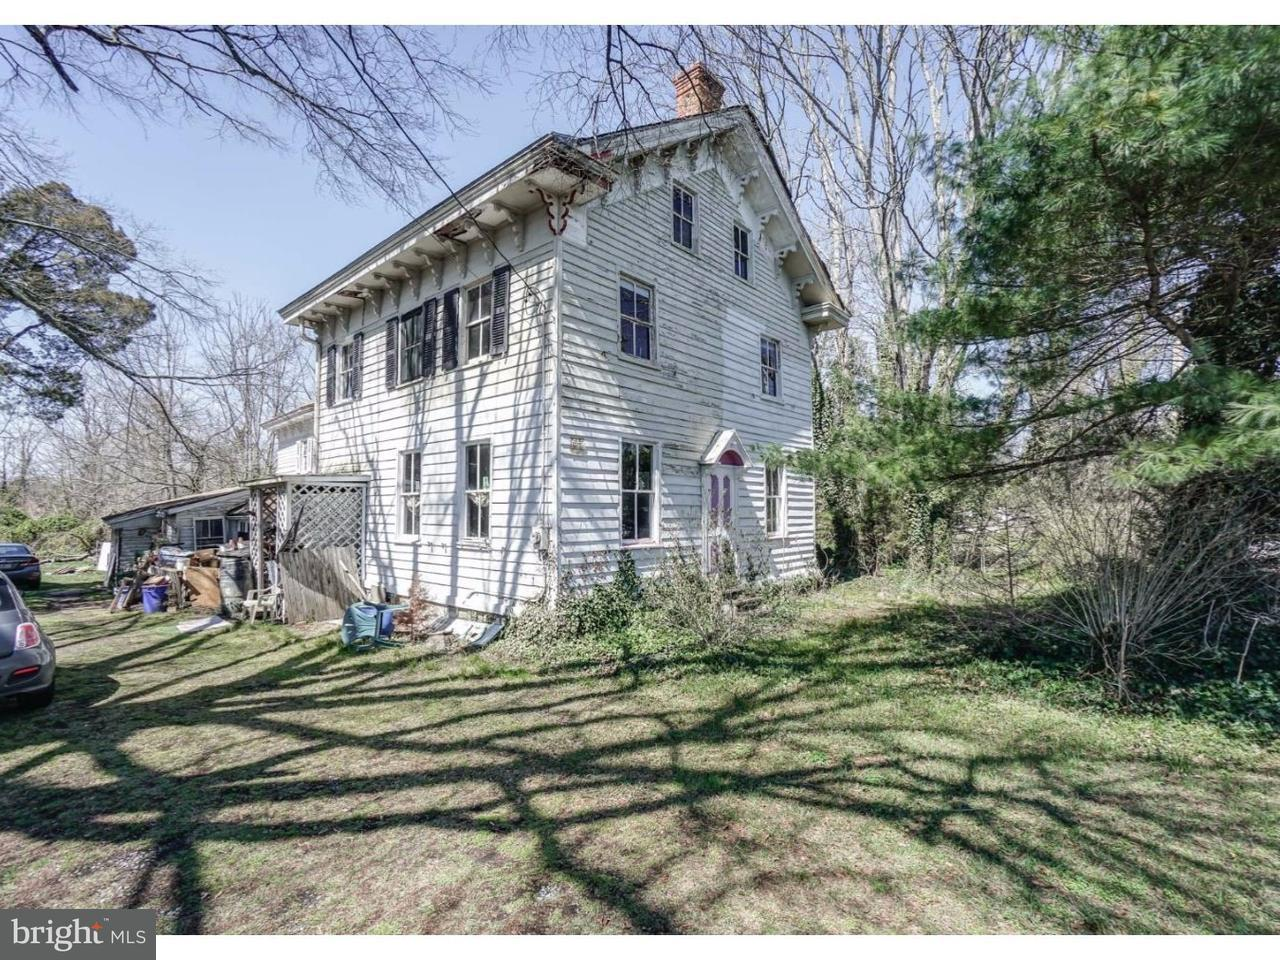 Single Family Home for Sale at 3528 ROUTE 47 Port Elizabeth, New Jersey 08348 United States